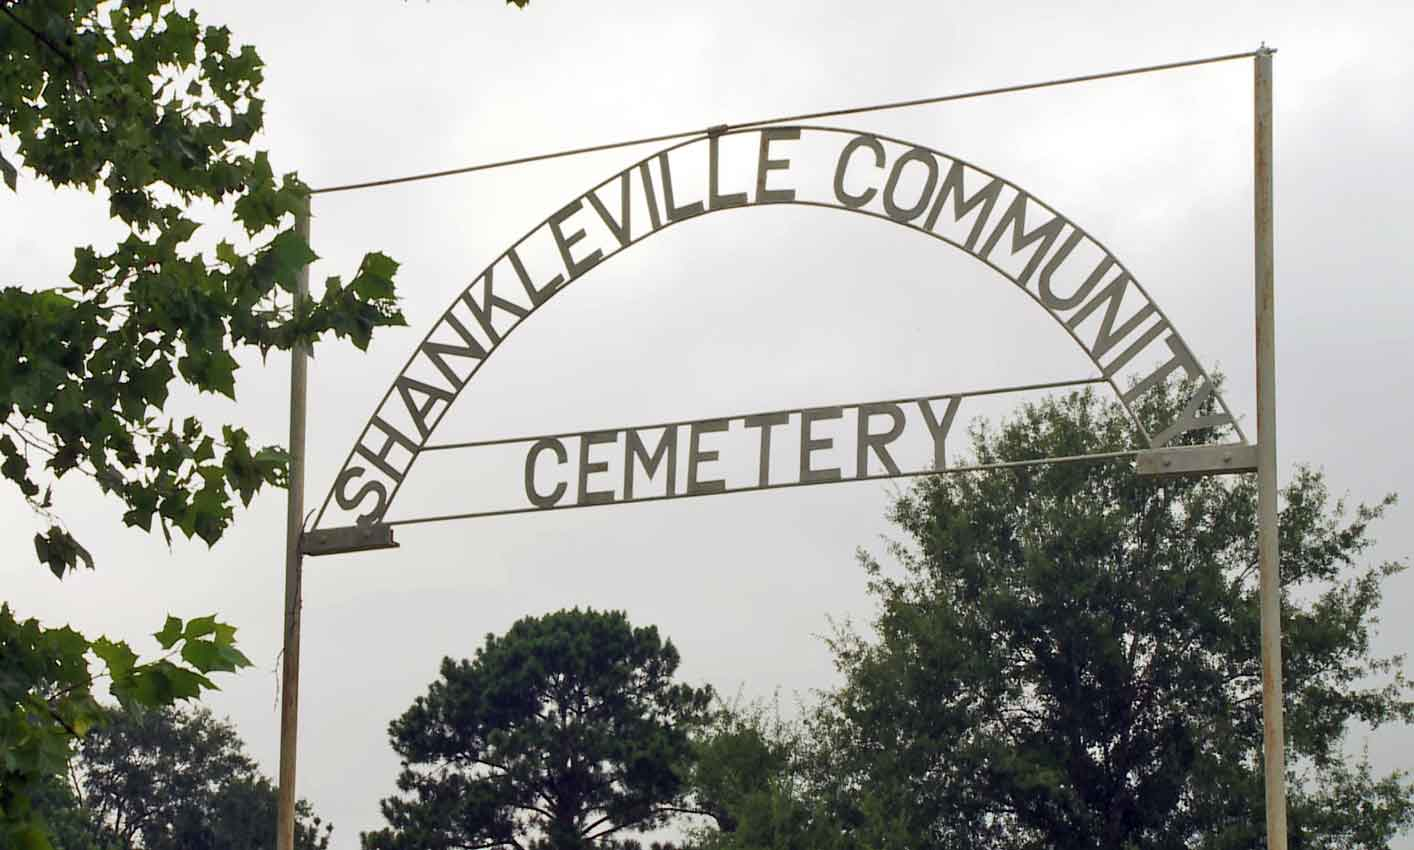 Shankleville Community Cemetery